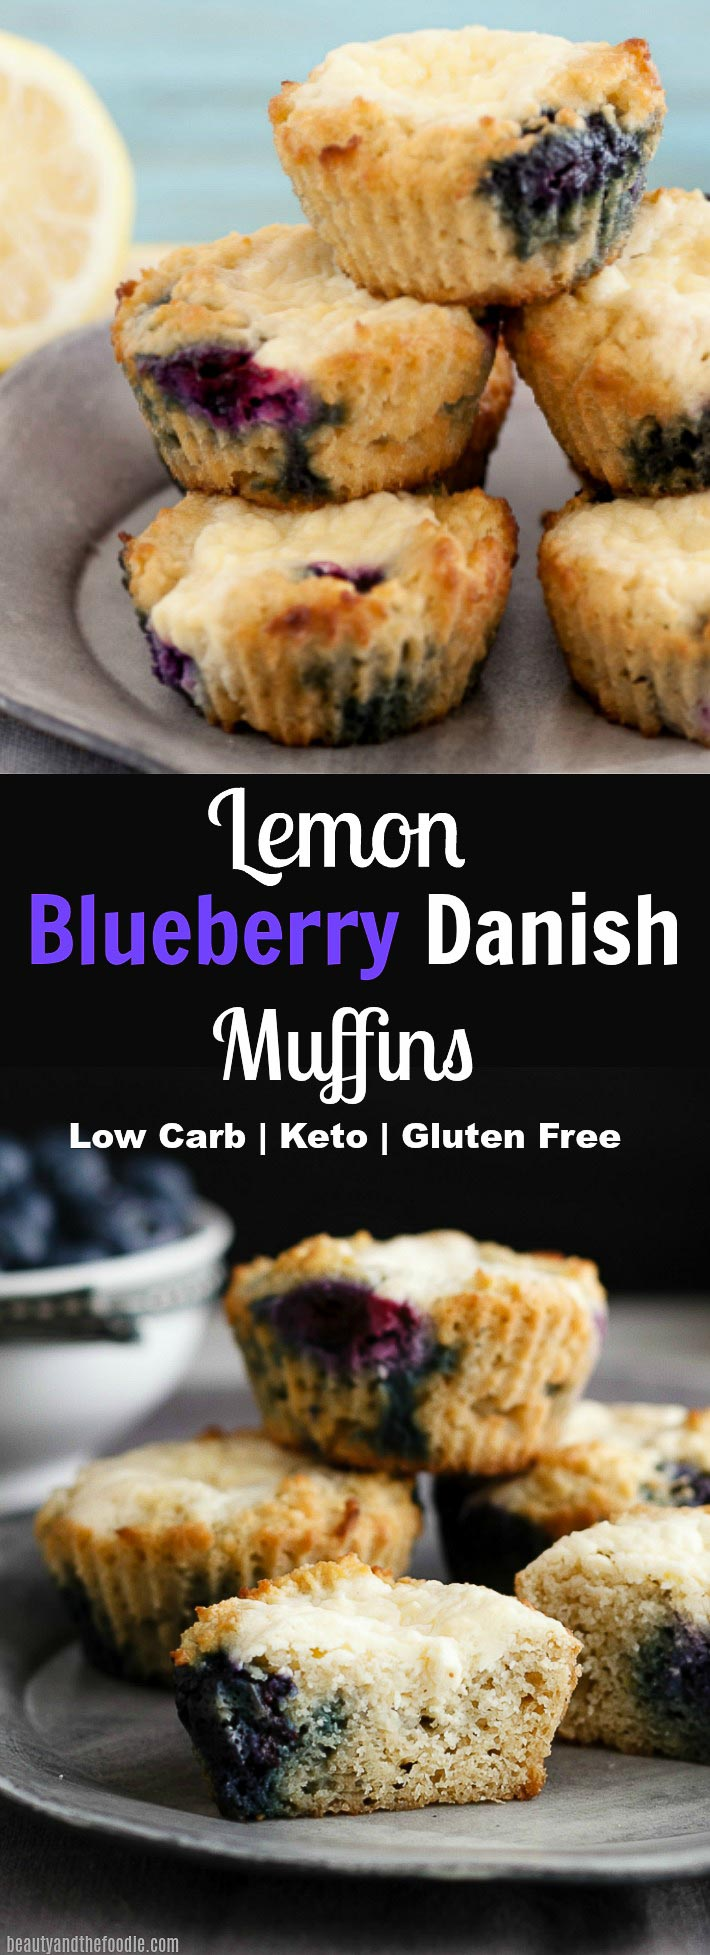 Lemon Blueberry Cheese Danish Muffins- Low Carb & Gluten Free